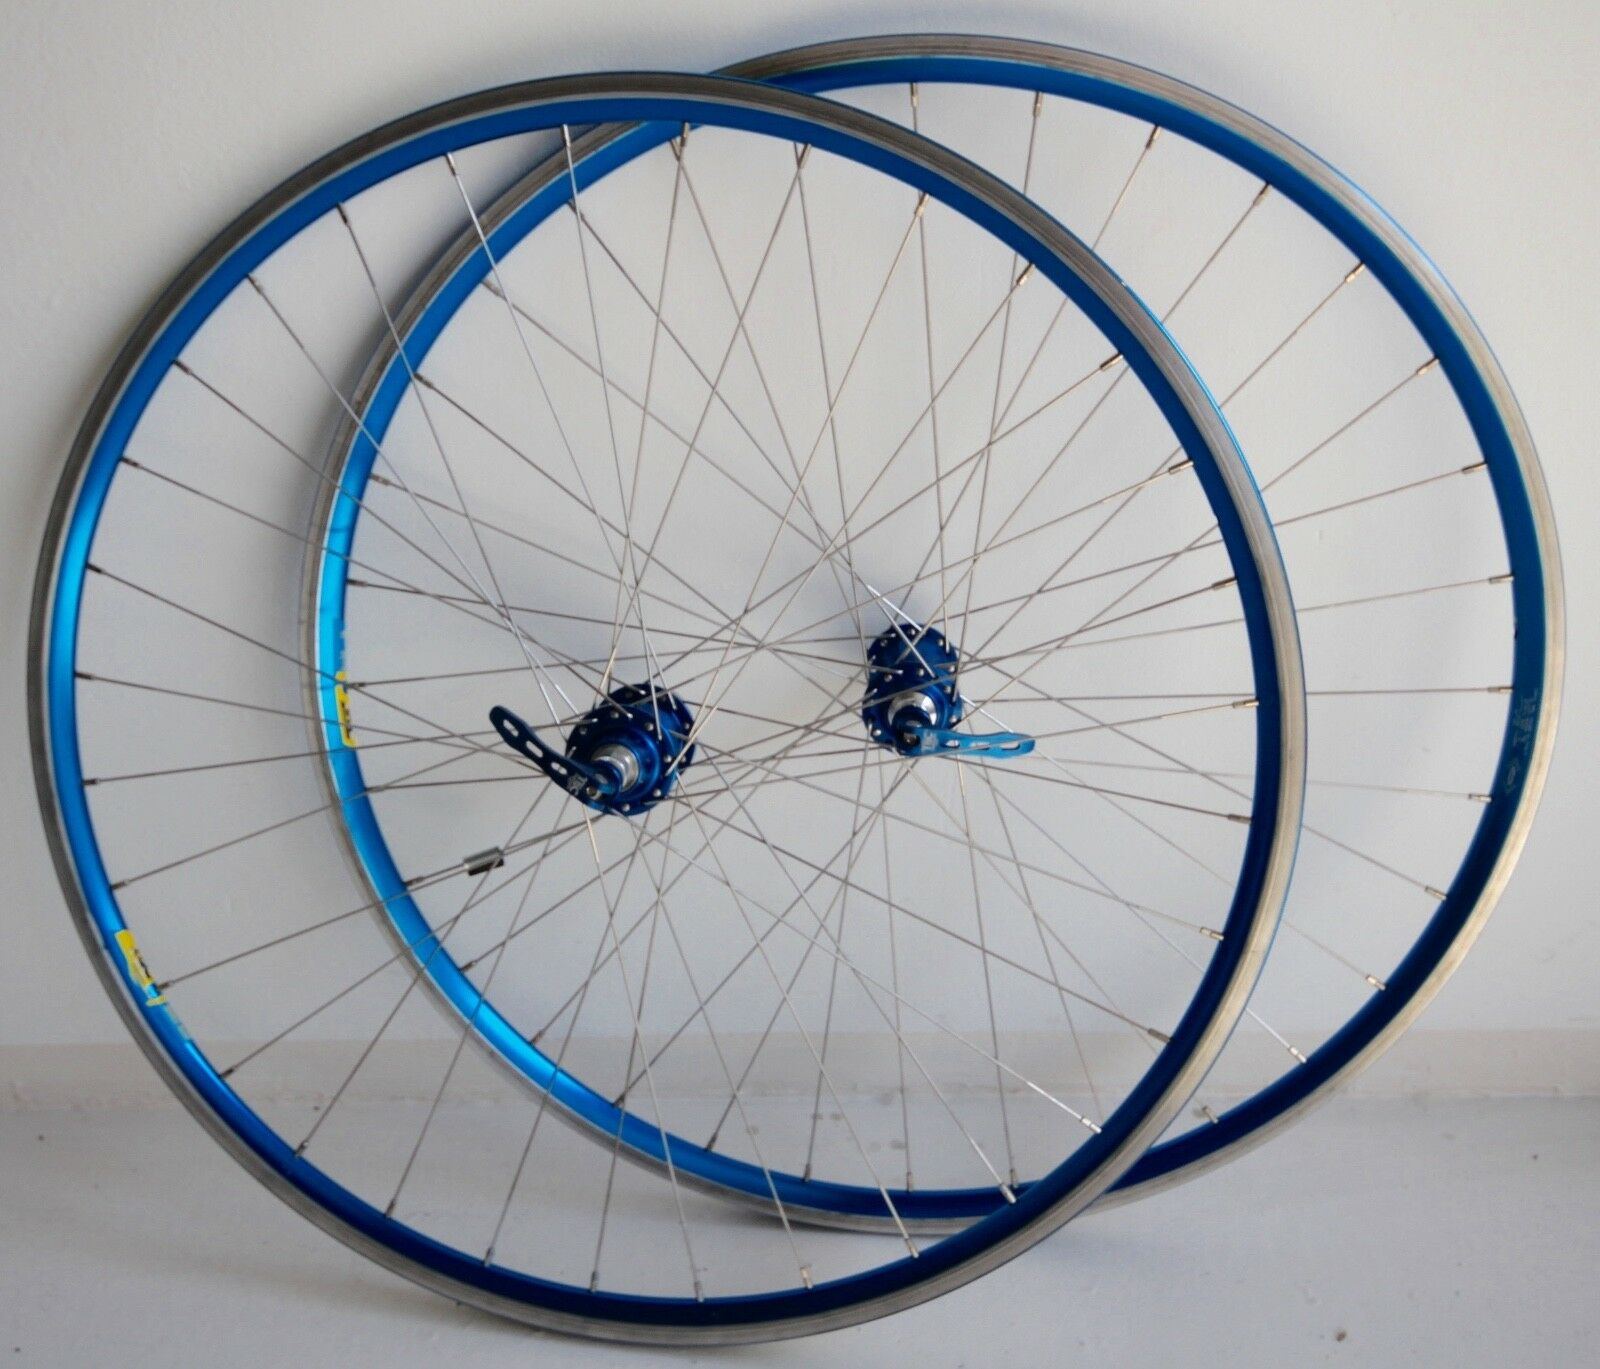 Tec Components azul Anodized wheelset 9s Campagnolo 700c 32h pesadas